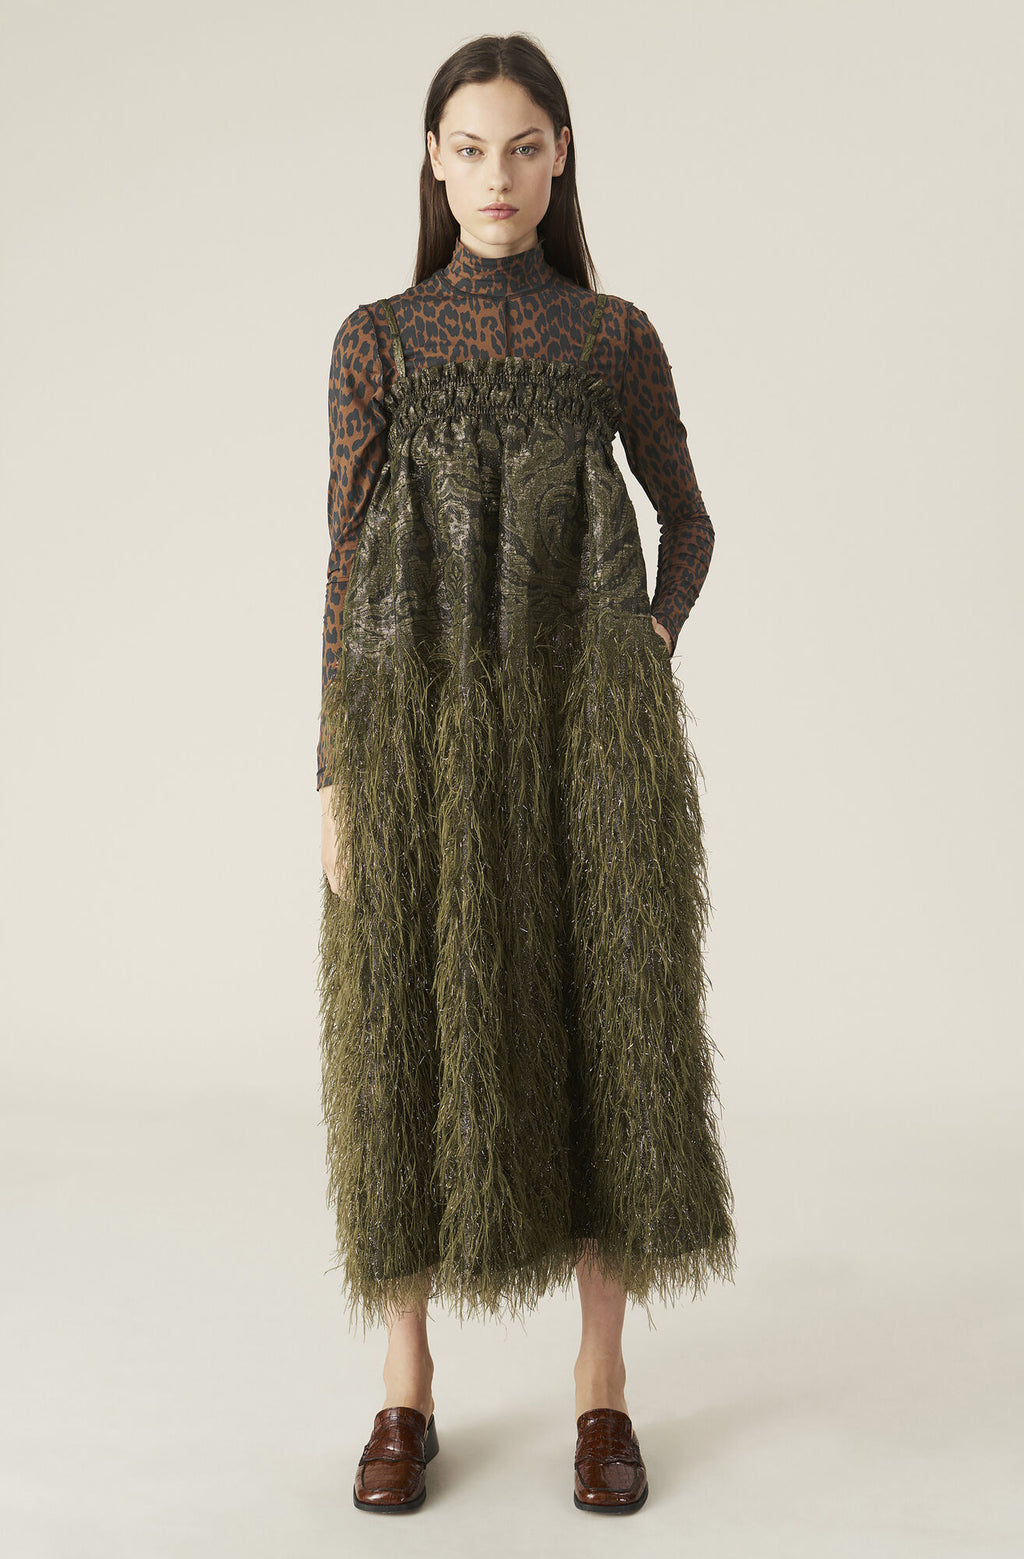 FEATHERY COTTON STRAP DRESS - KALAMATA